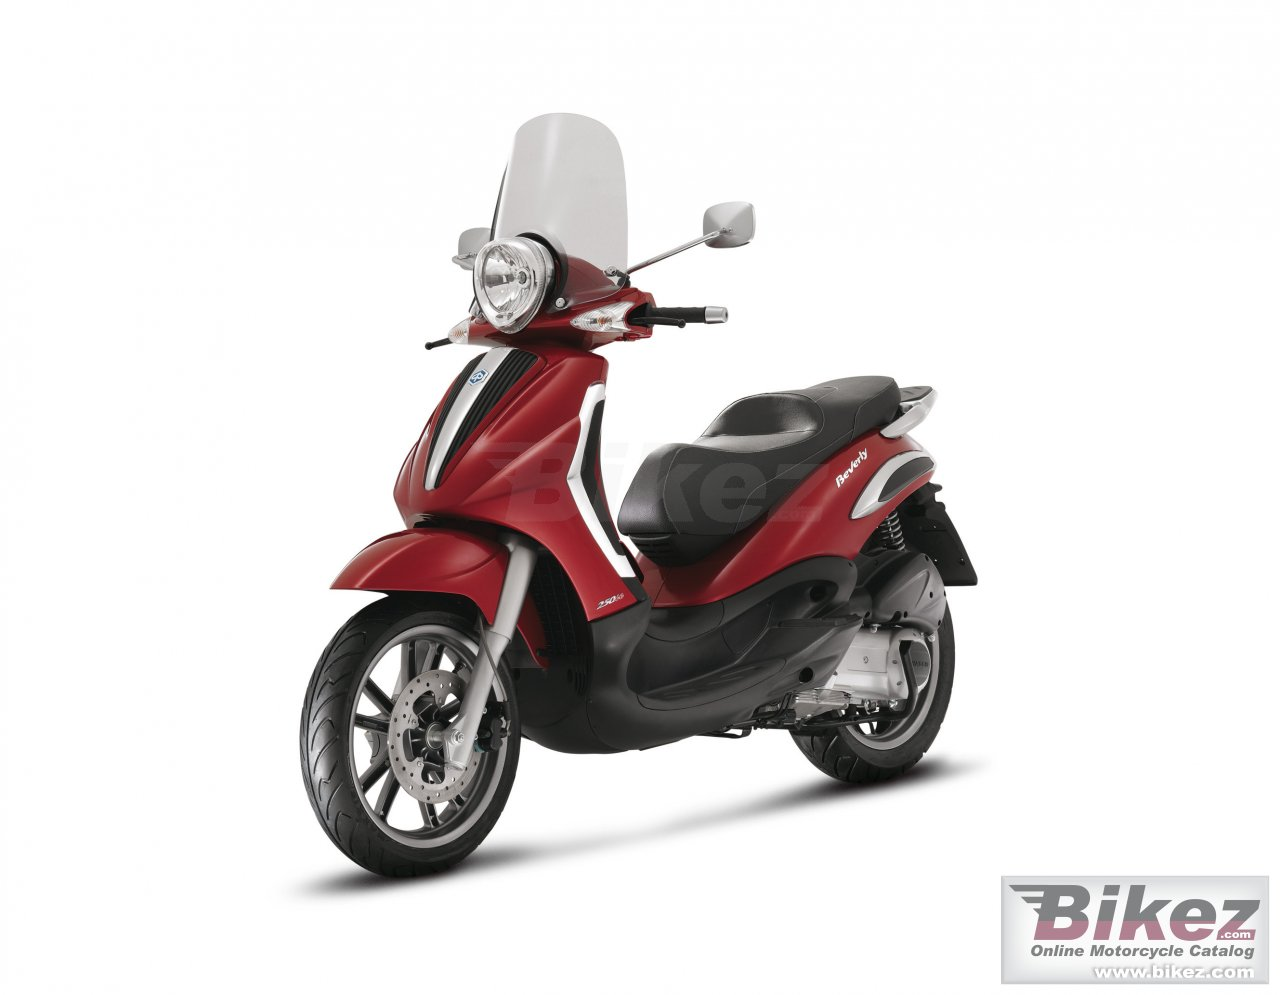 Big Piaggio bv tourer 250 picture and wallpaper from Bikez.com